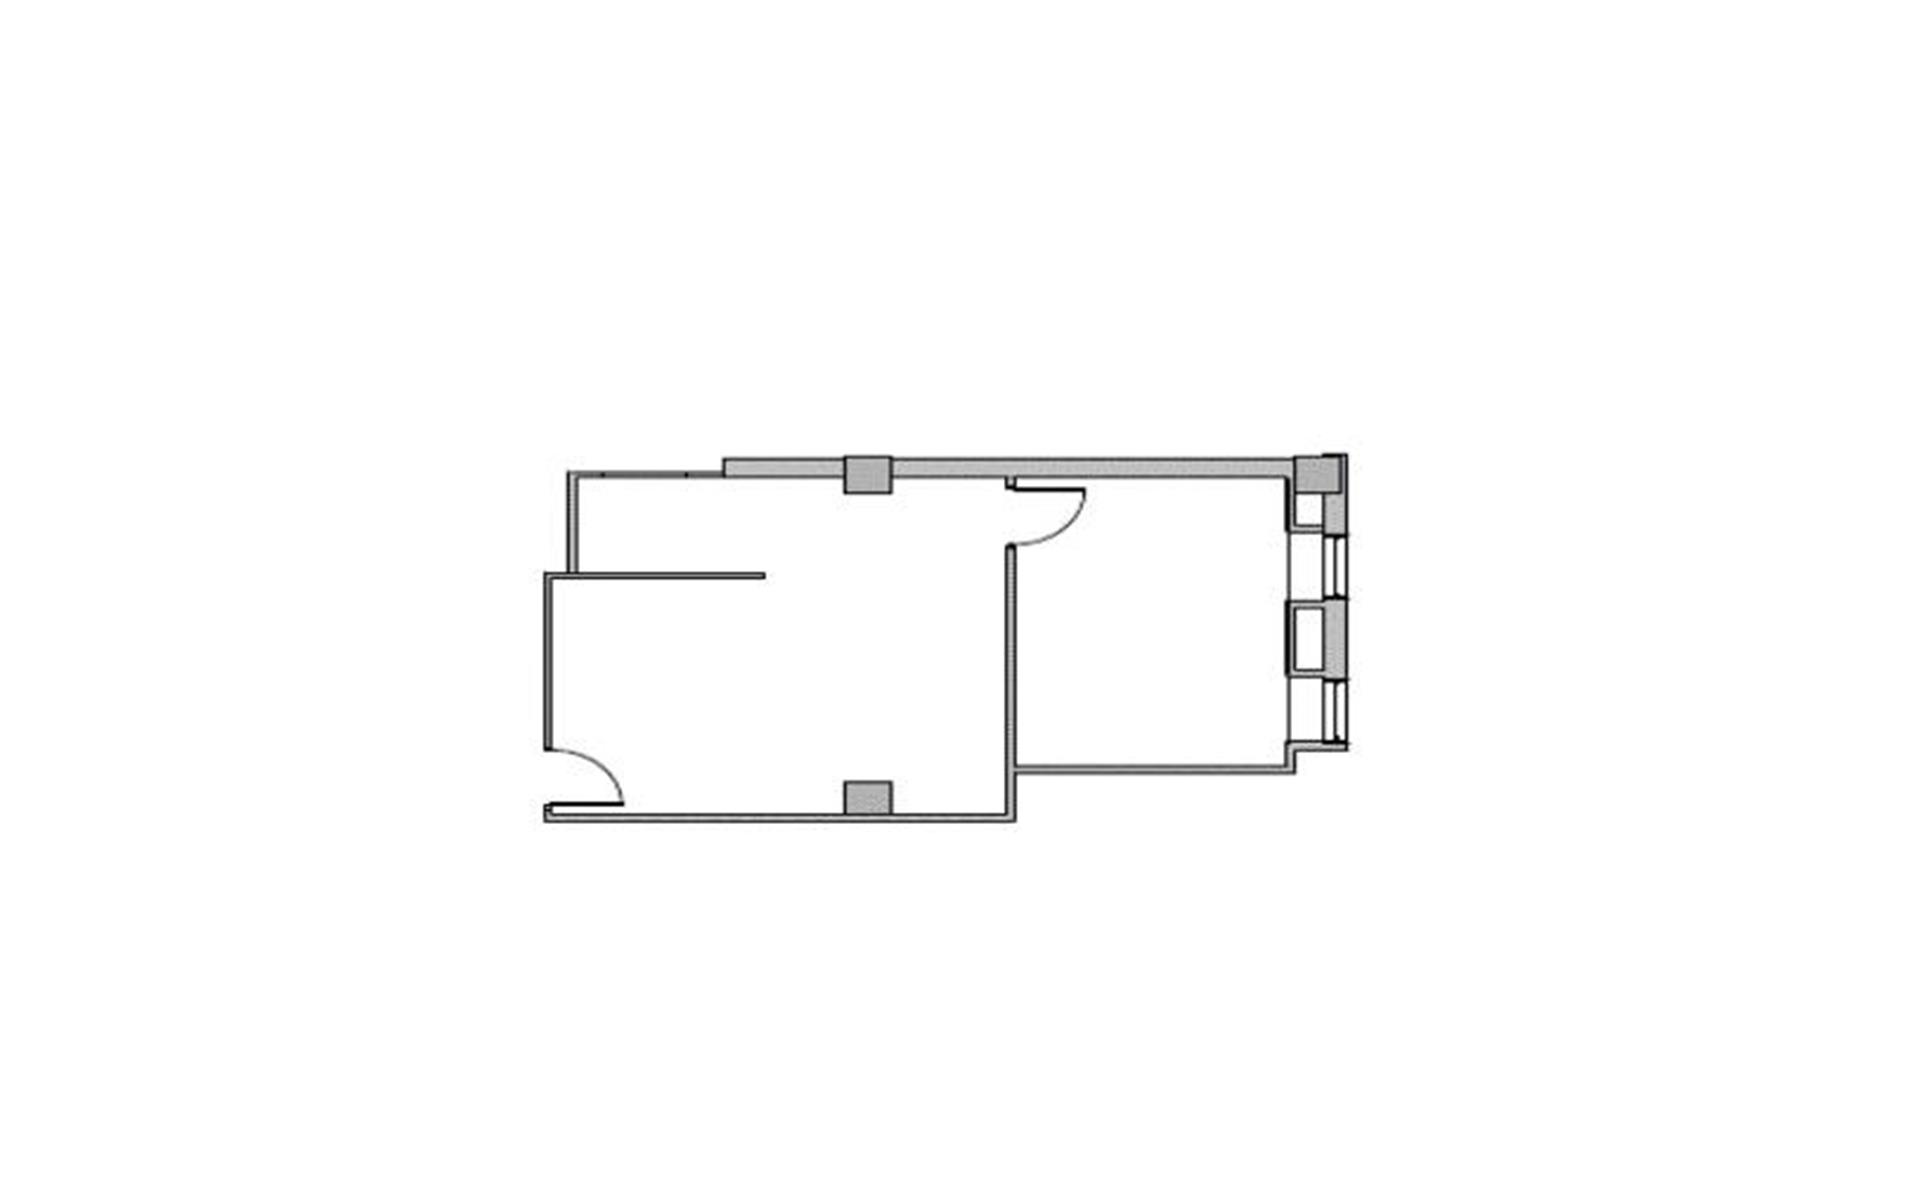 Boxer - 3100 East 45th Street - Team Space   Suite 430